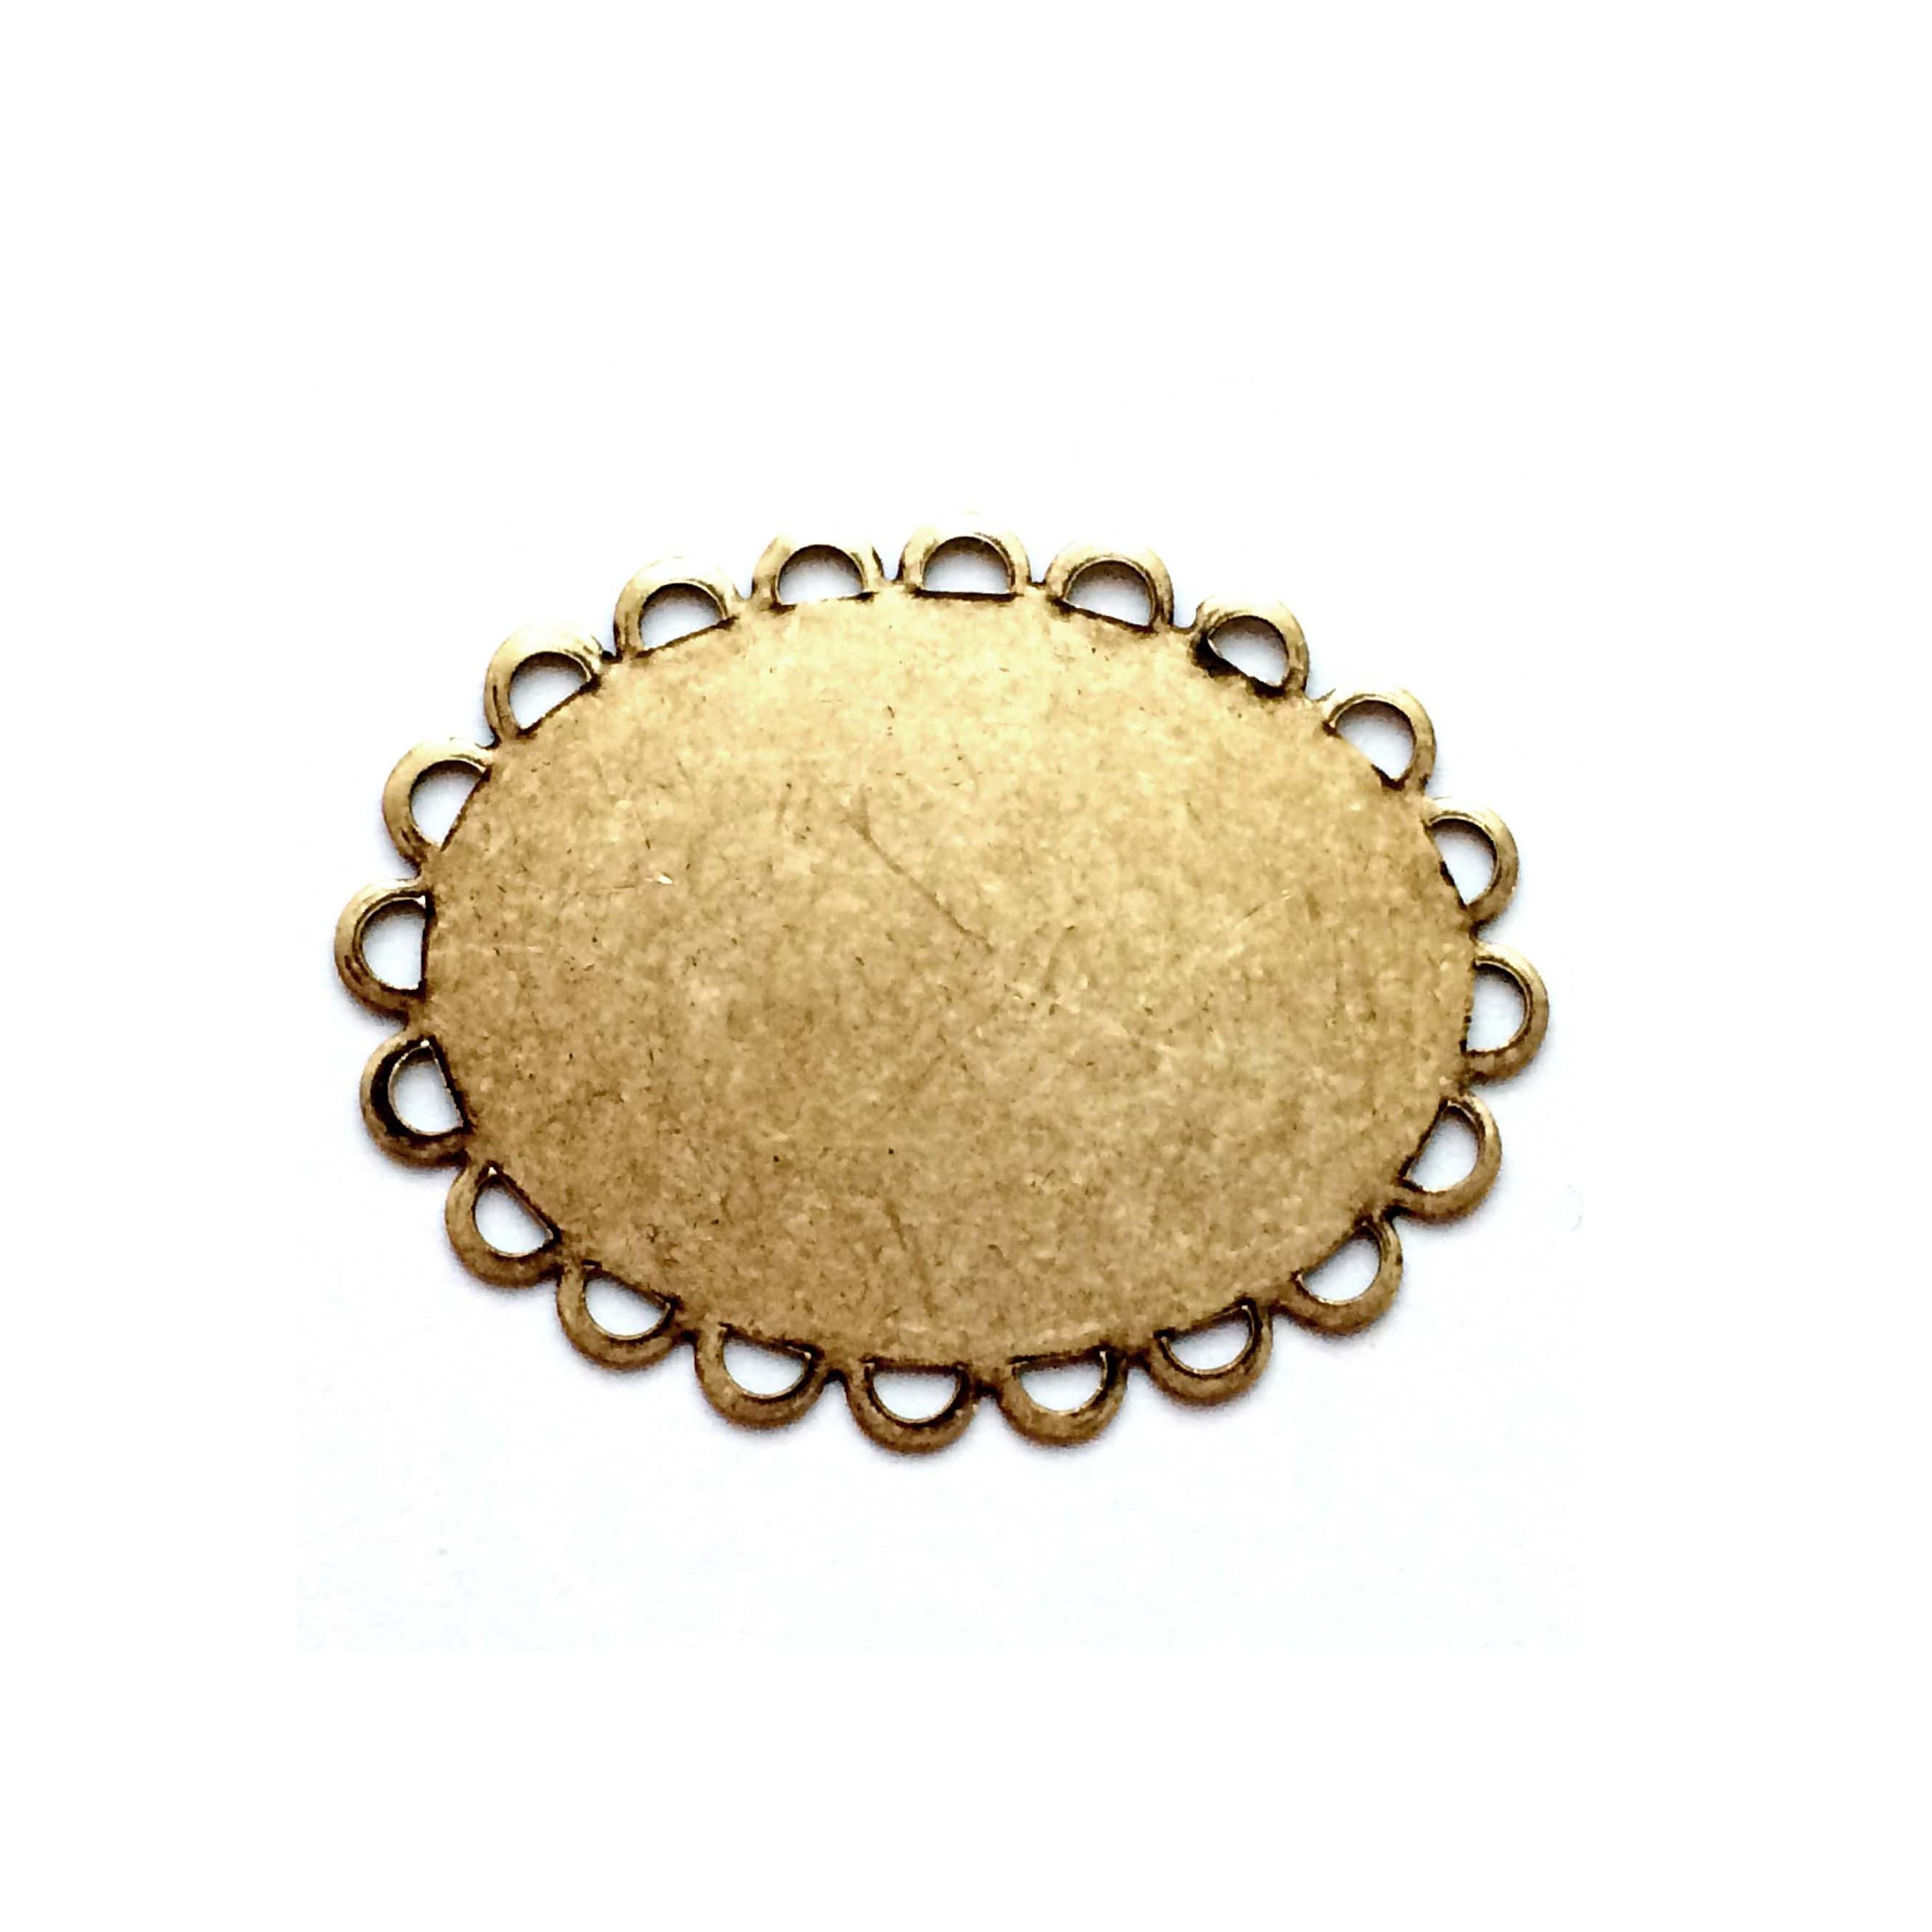 brass jewelry base, drilled base, brass ox, 0595, B'sue Boutiques, nickel free jewelry, US made jewelry, vintage jewellery supplies, jewelry making supplies, antique brass, brass blanks, oval jewelry blanks, loop edge base